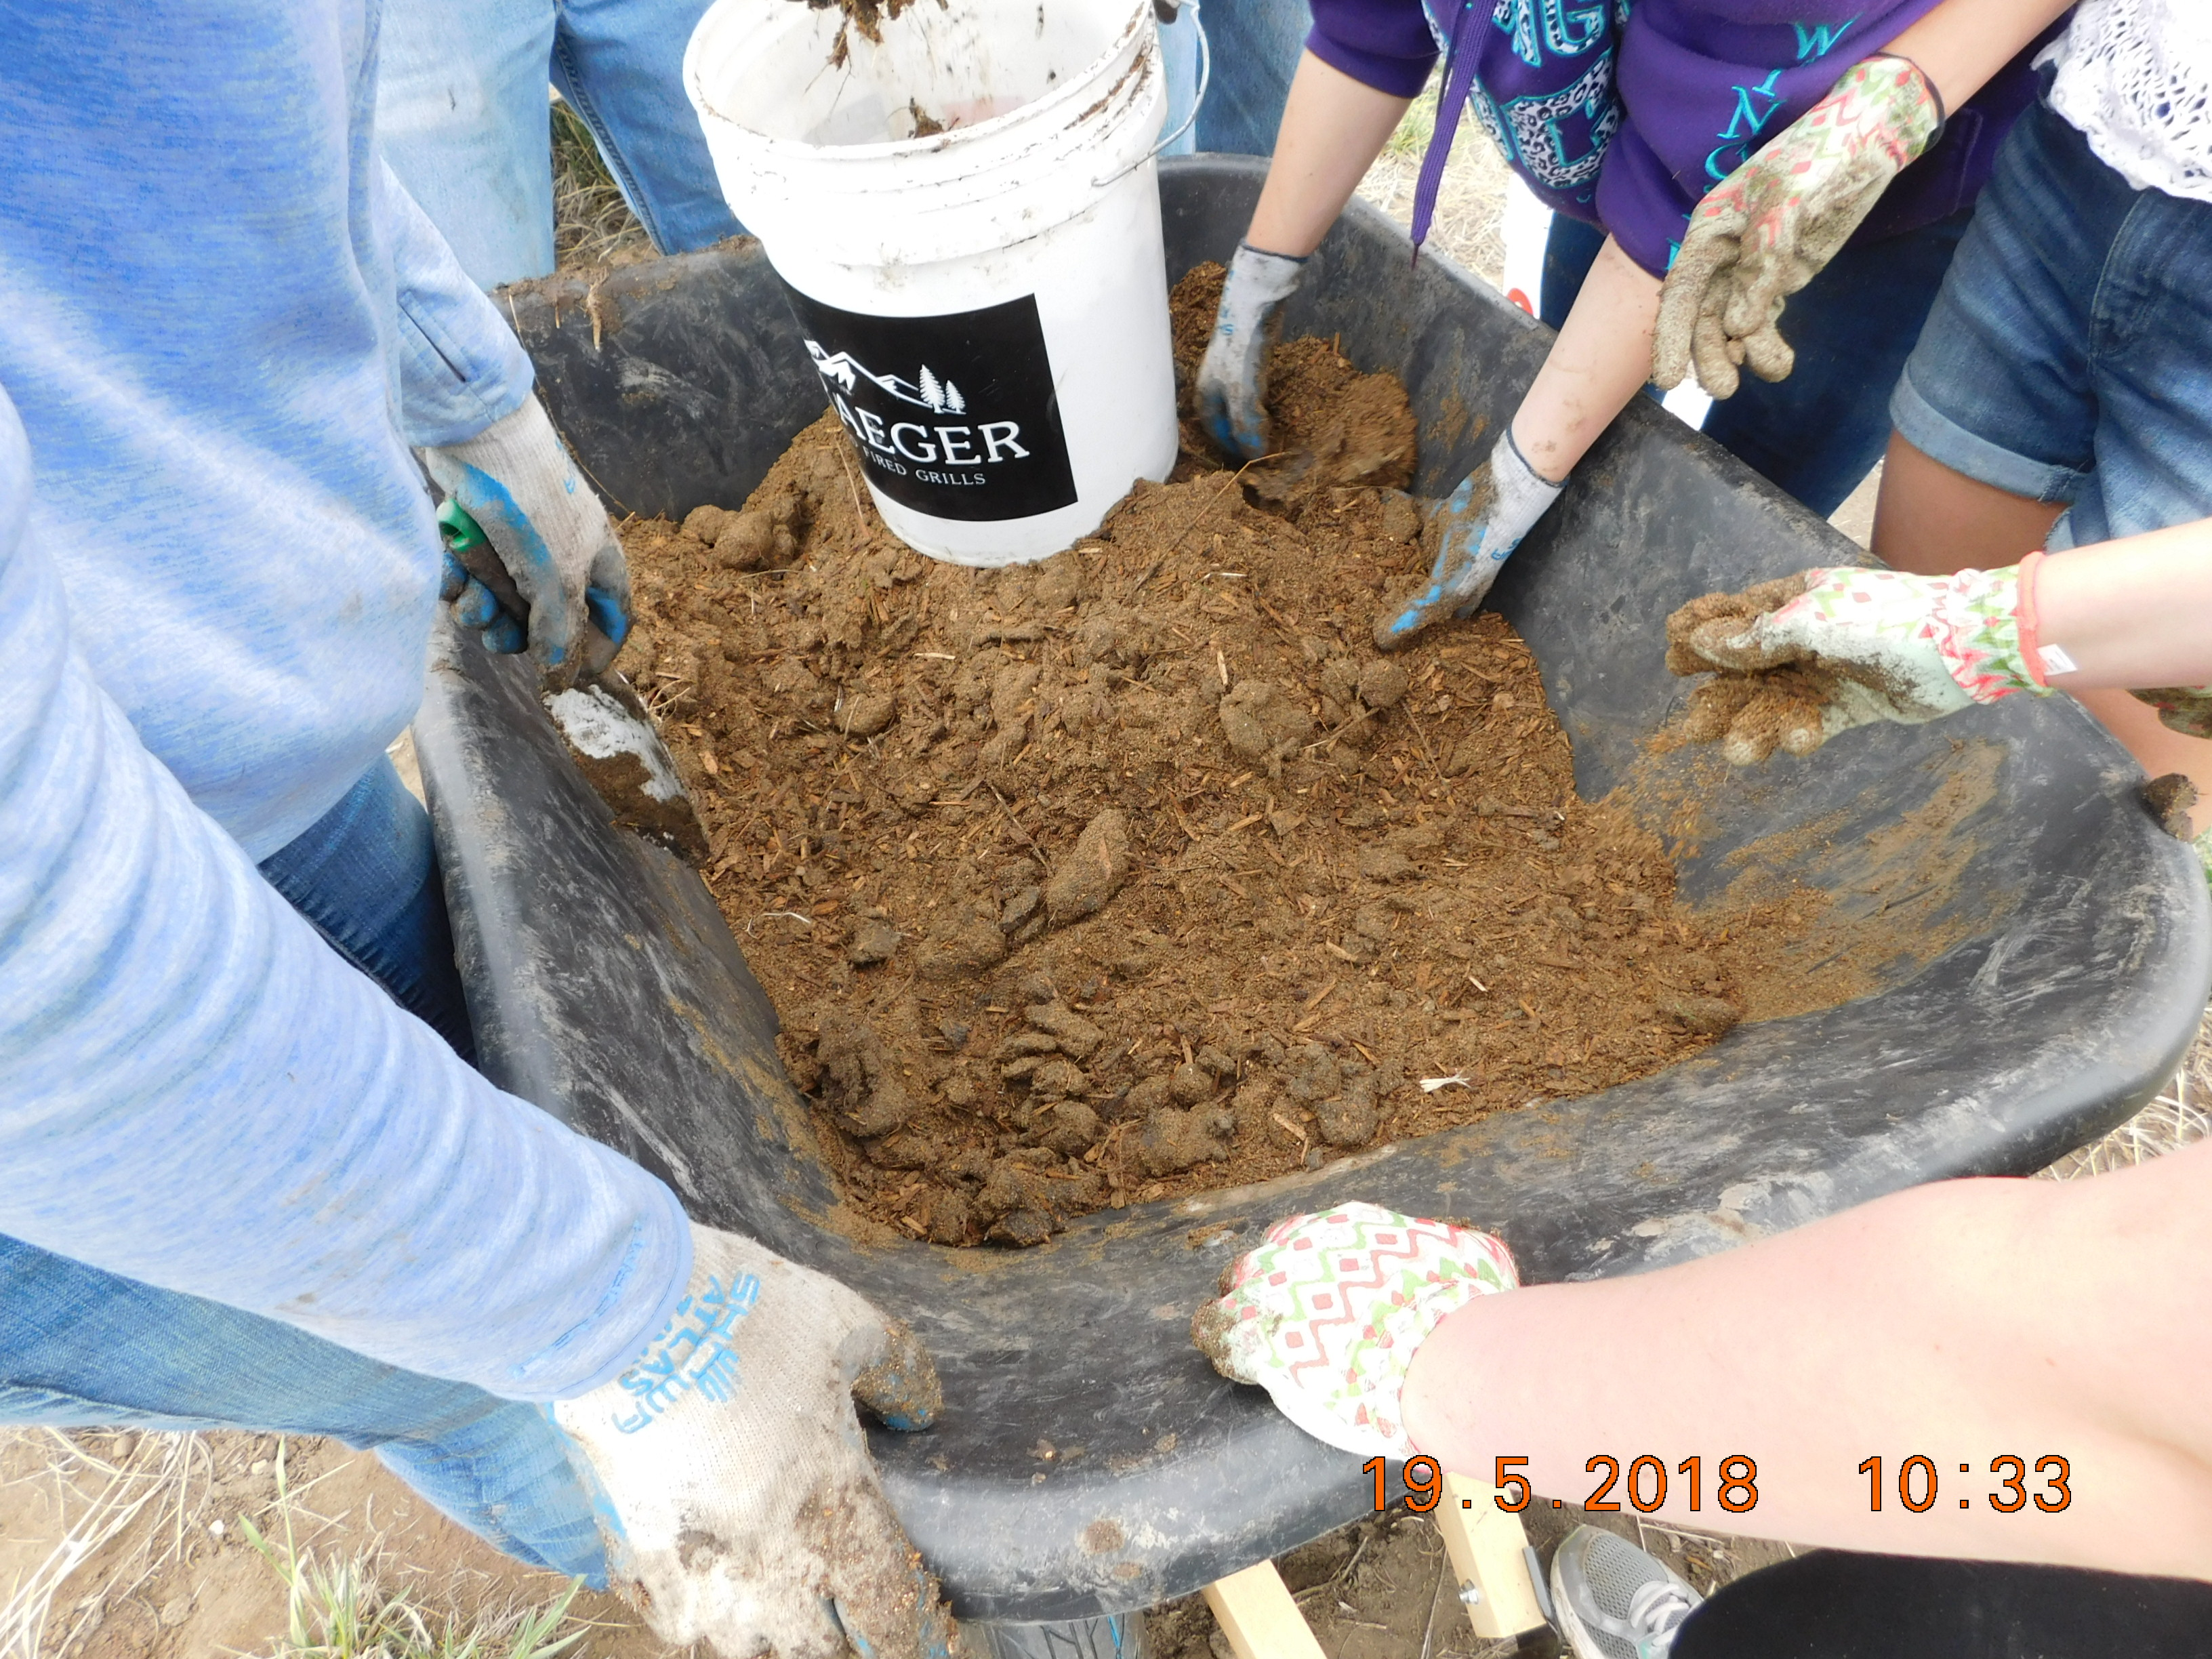 mixing soil for planting - a difficult job when mixing with the clay coming out of the ground